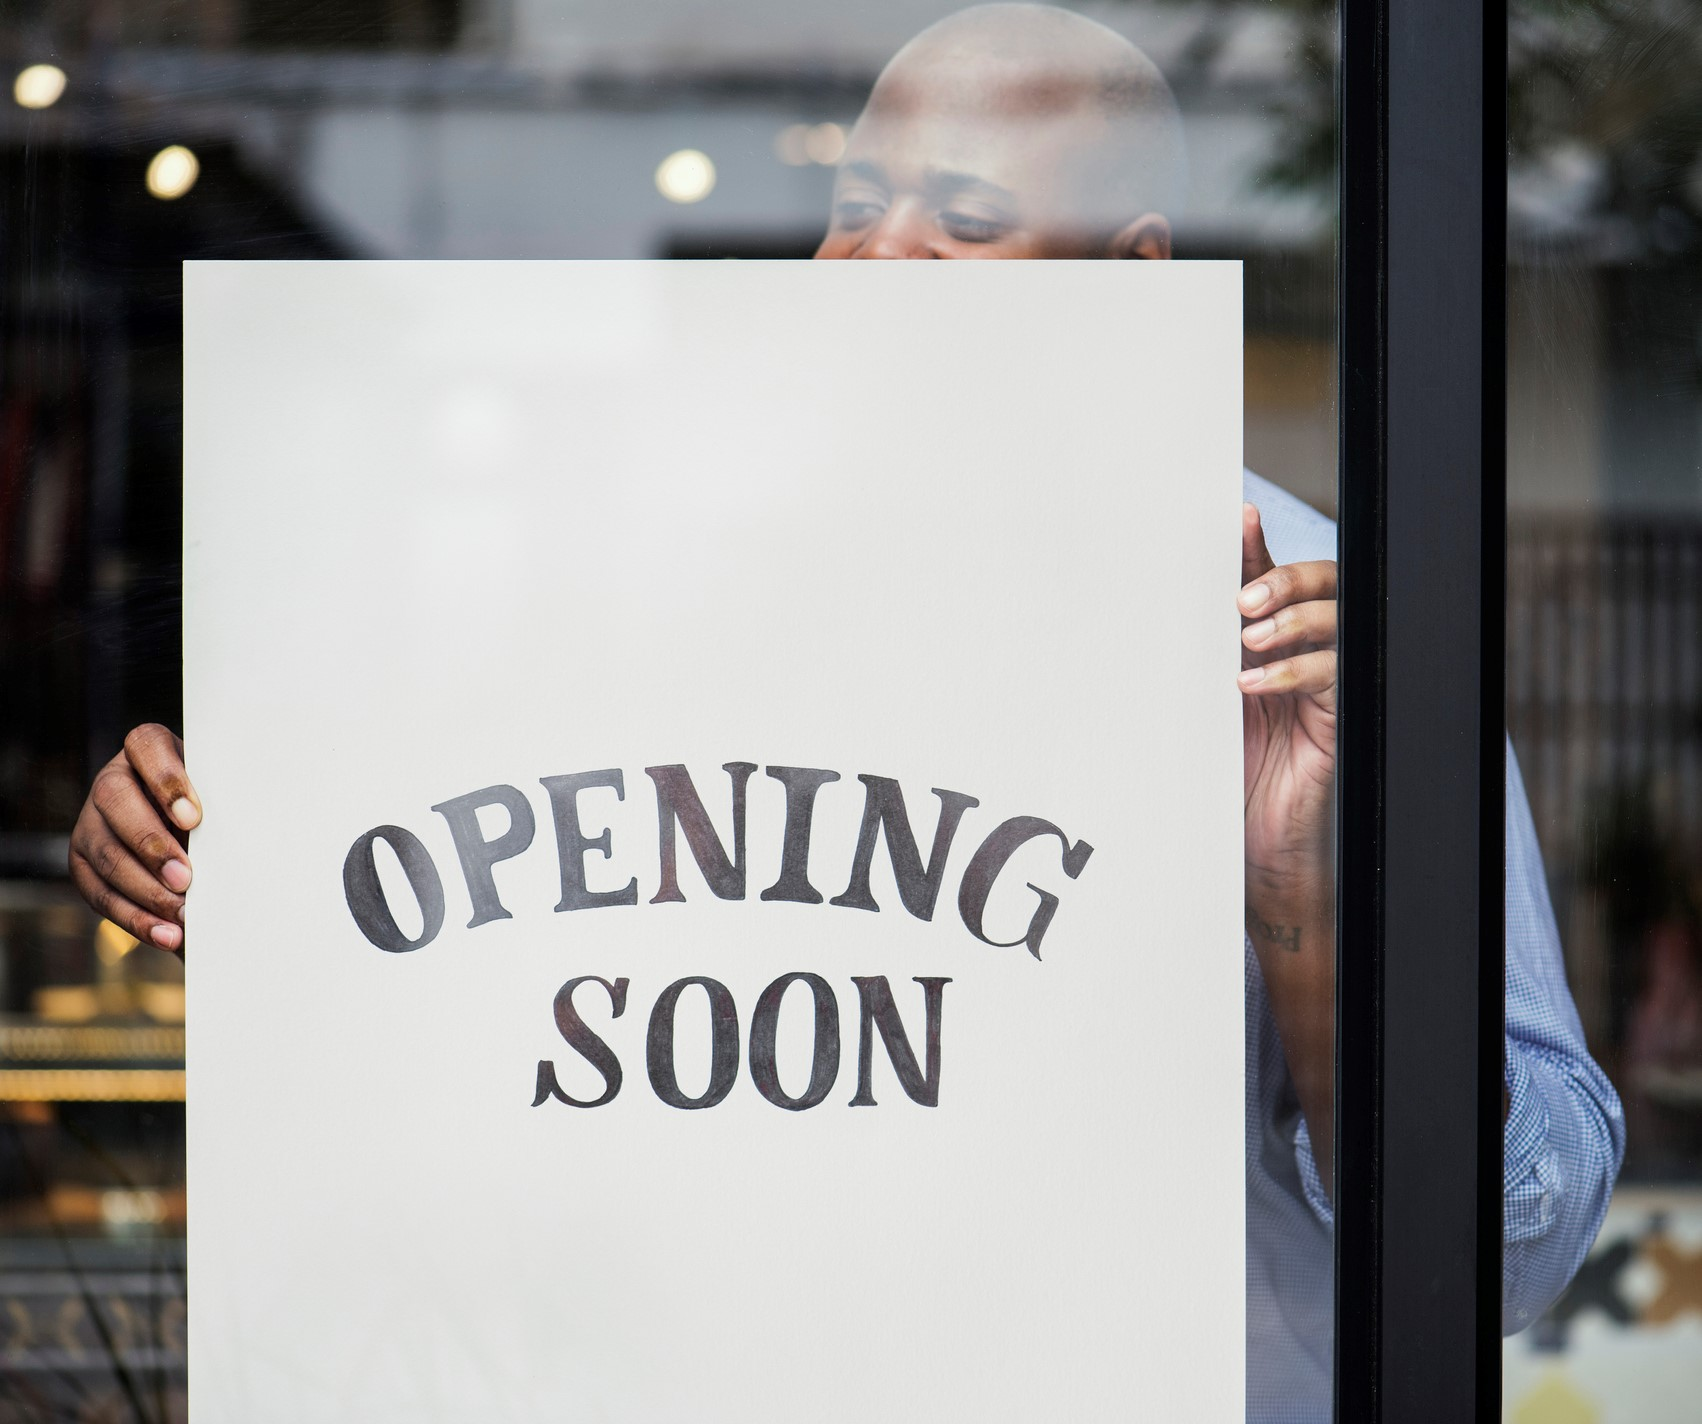 Business owner putting an Opening Soon sign in a window